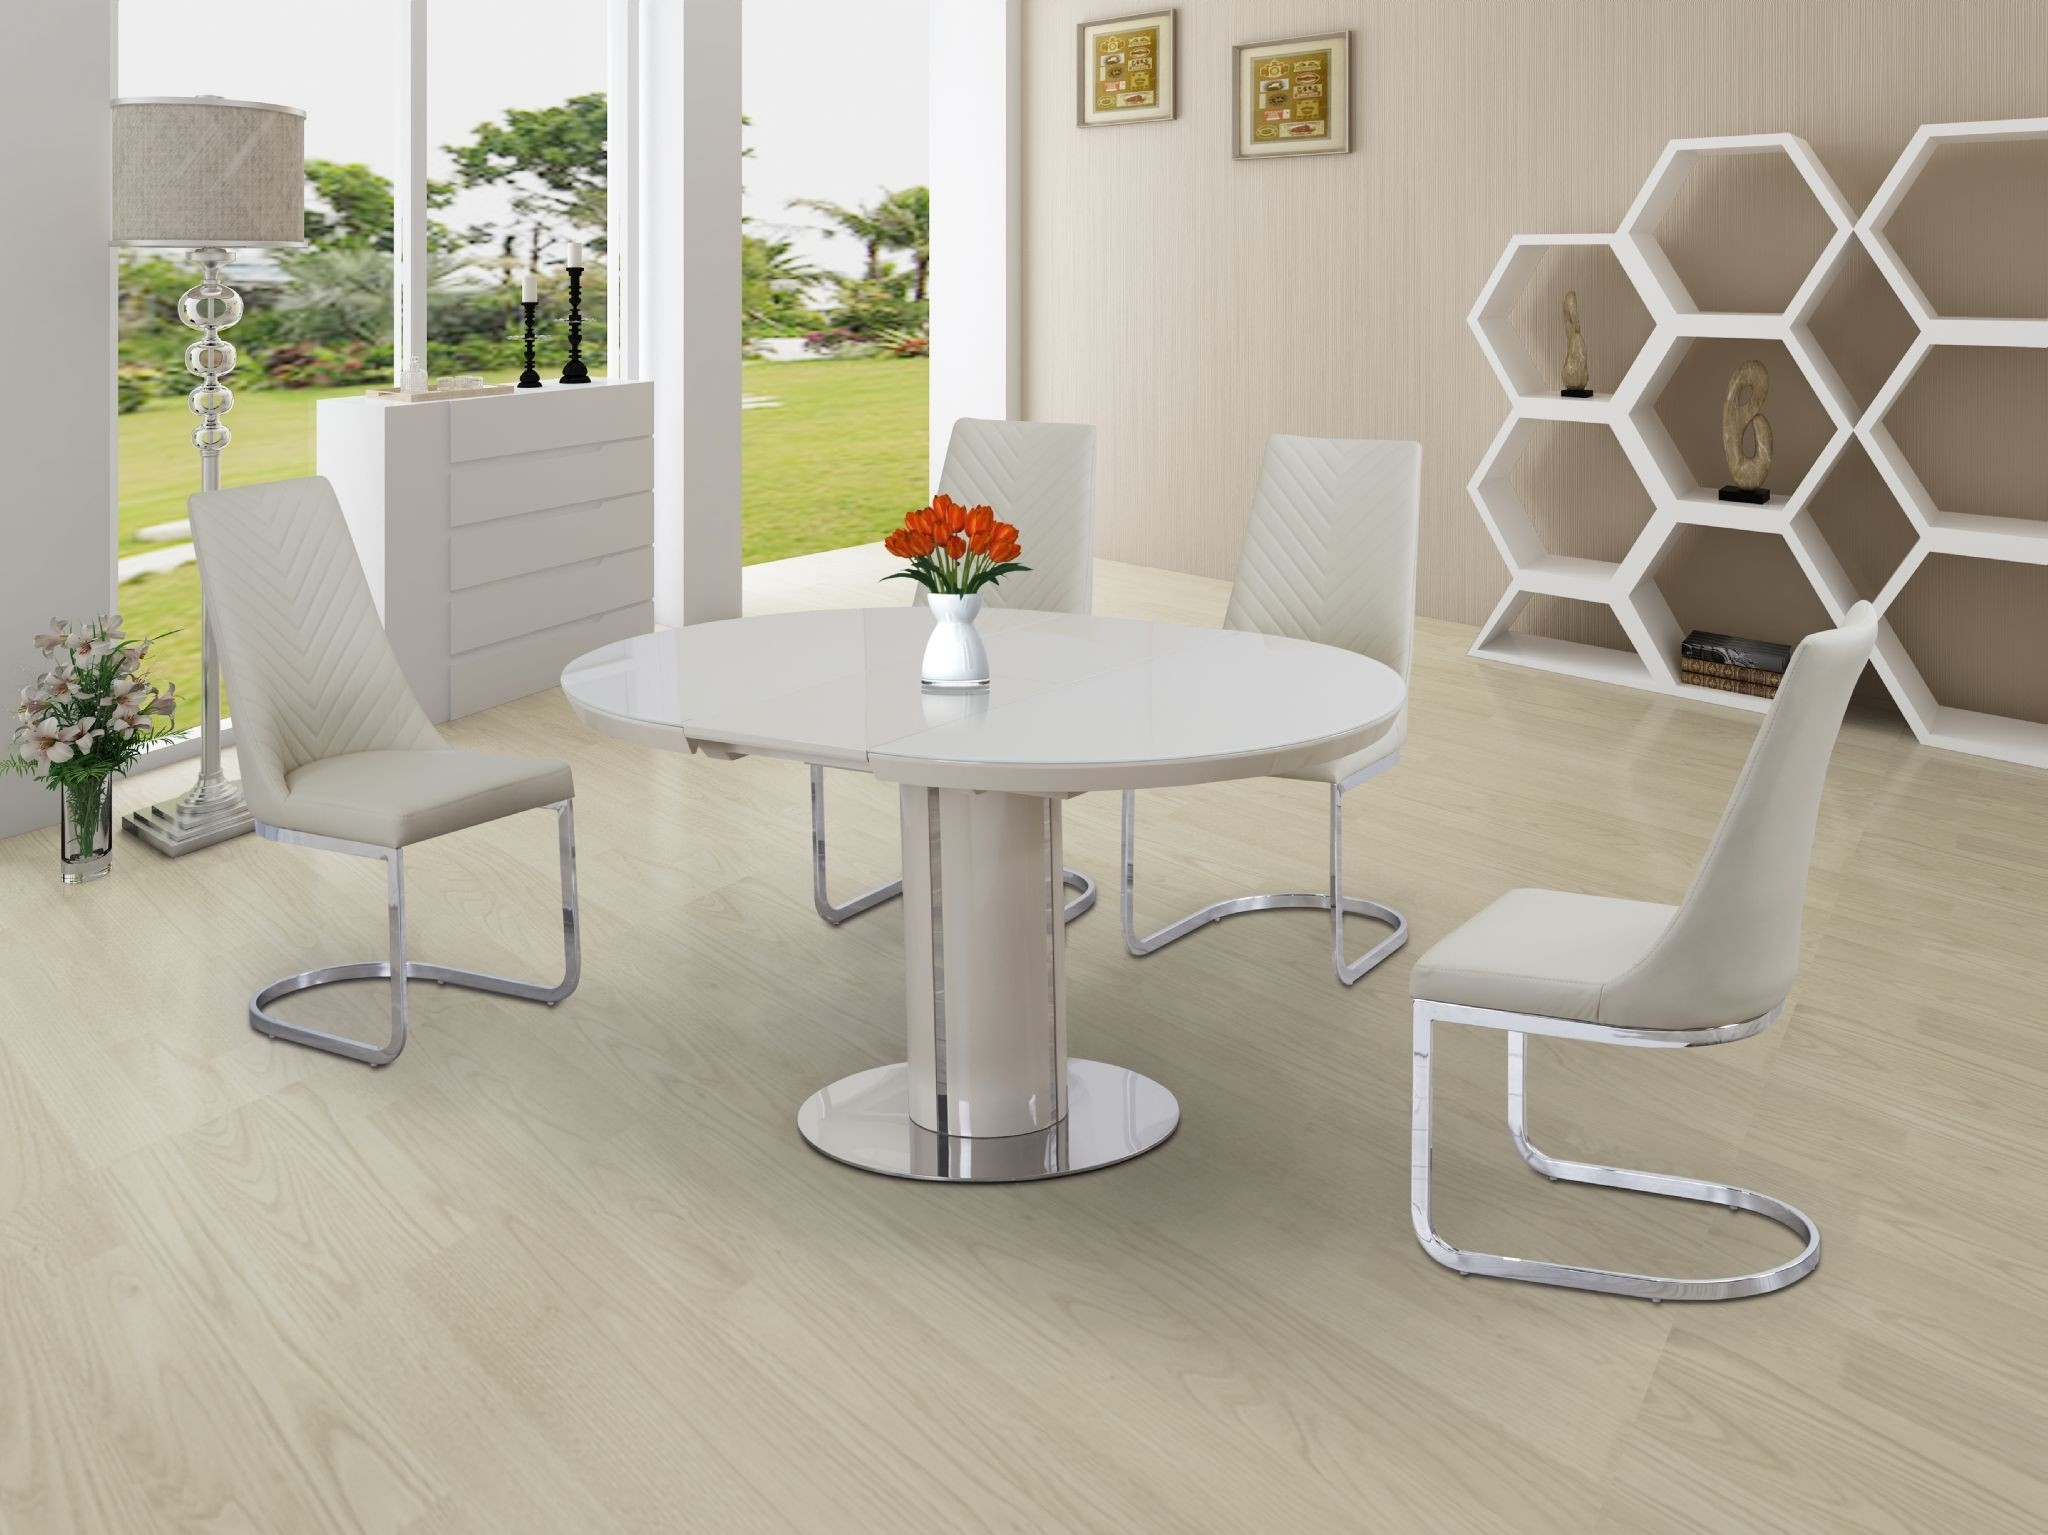 Buy Annular Cream High Gloss Extending Dining Table Pertaining To Best And Newest Hi Gloss Dining Tables (Gallery 2 of 25)